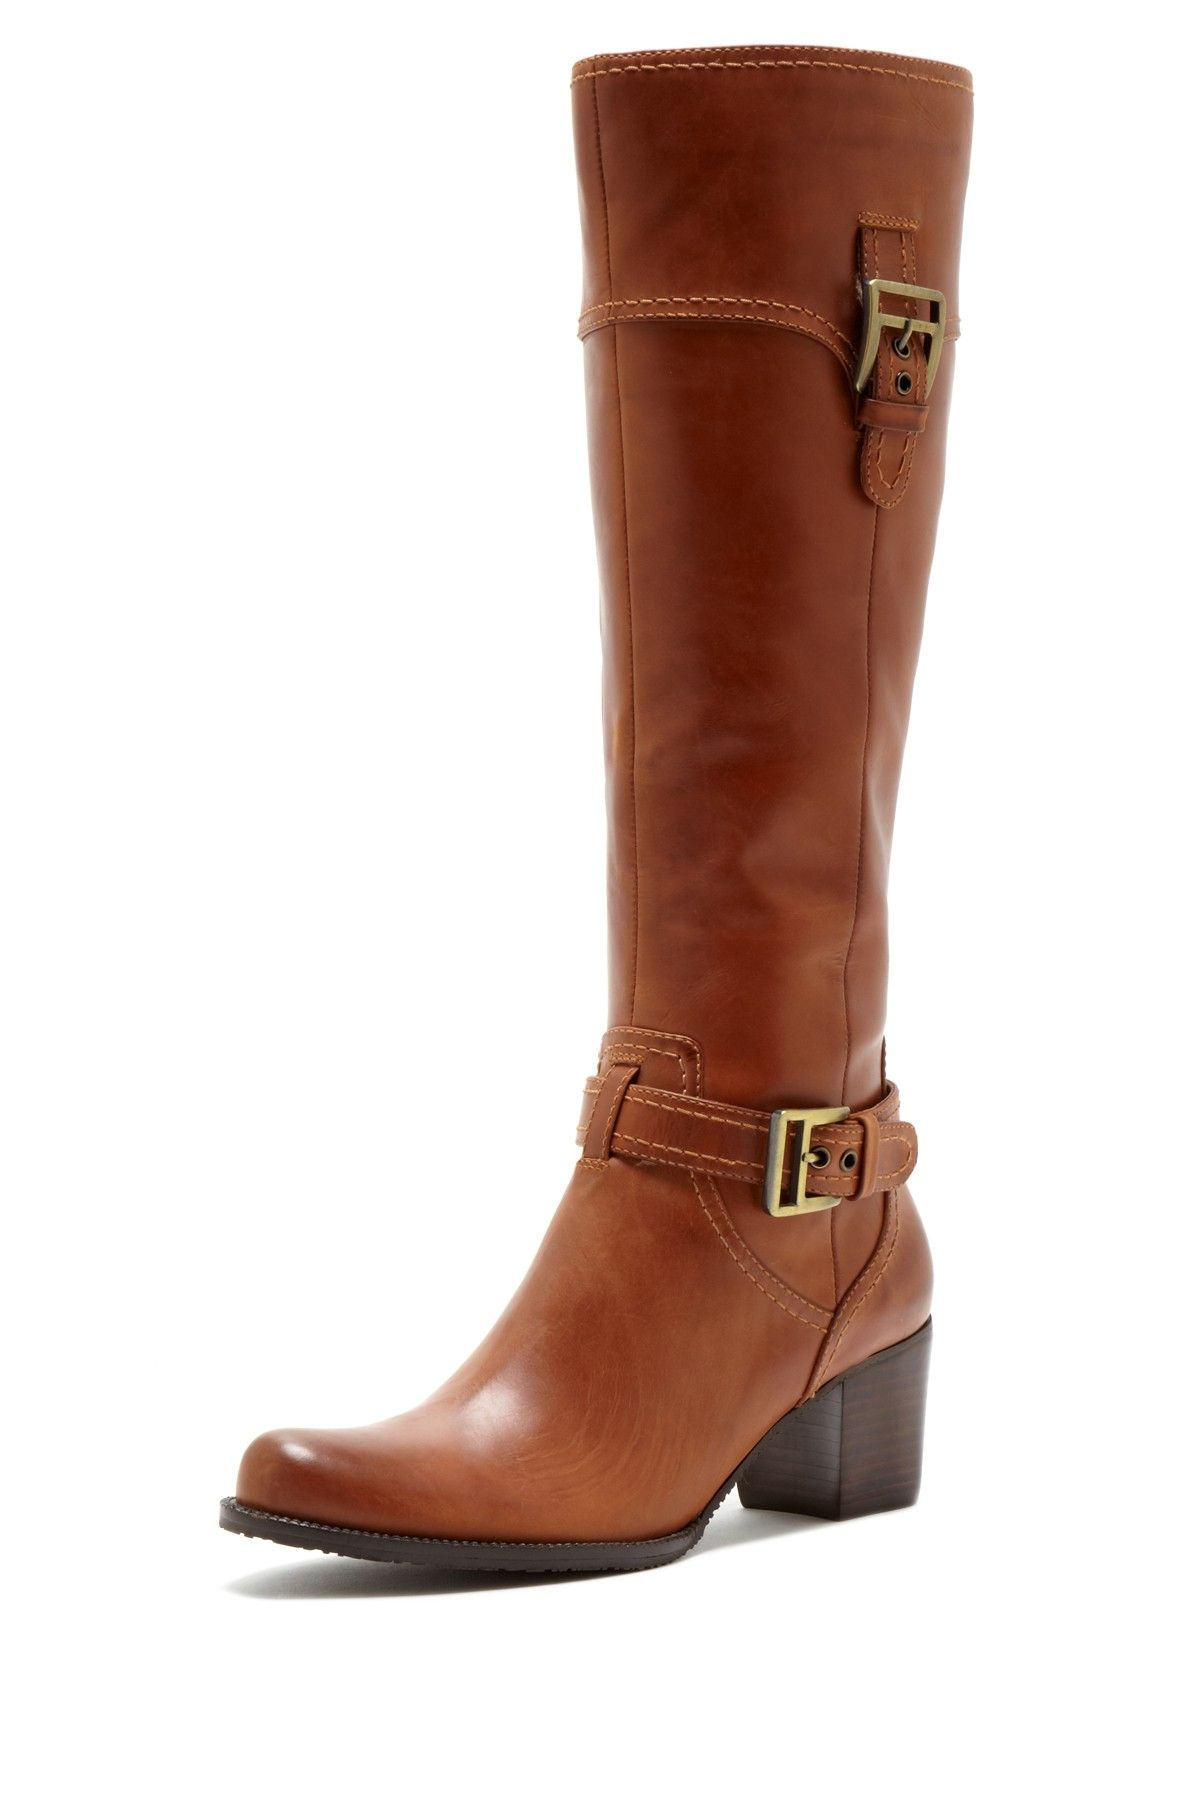 Adrienne Vittadini Hero Tall Boot